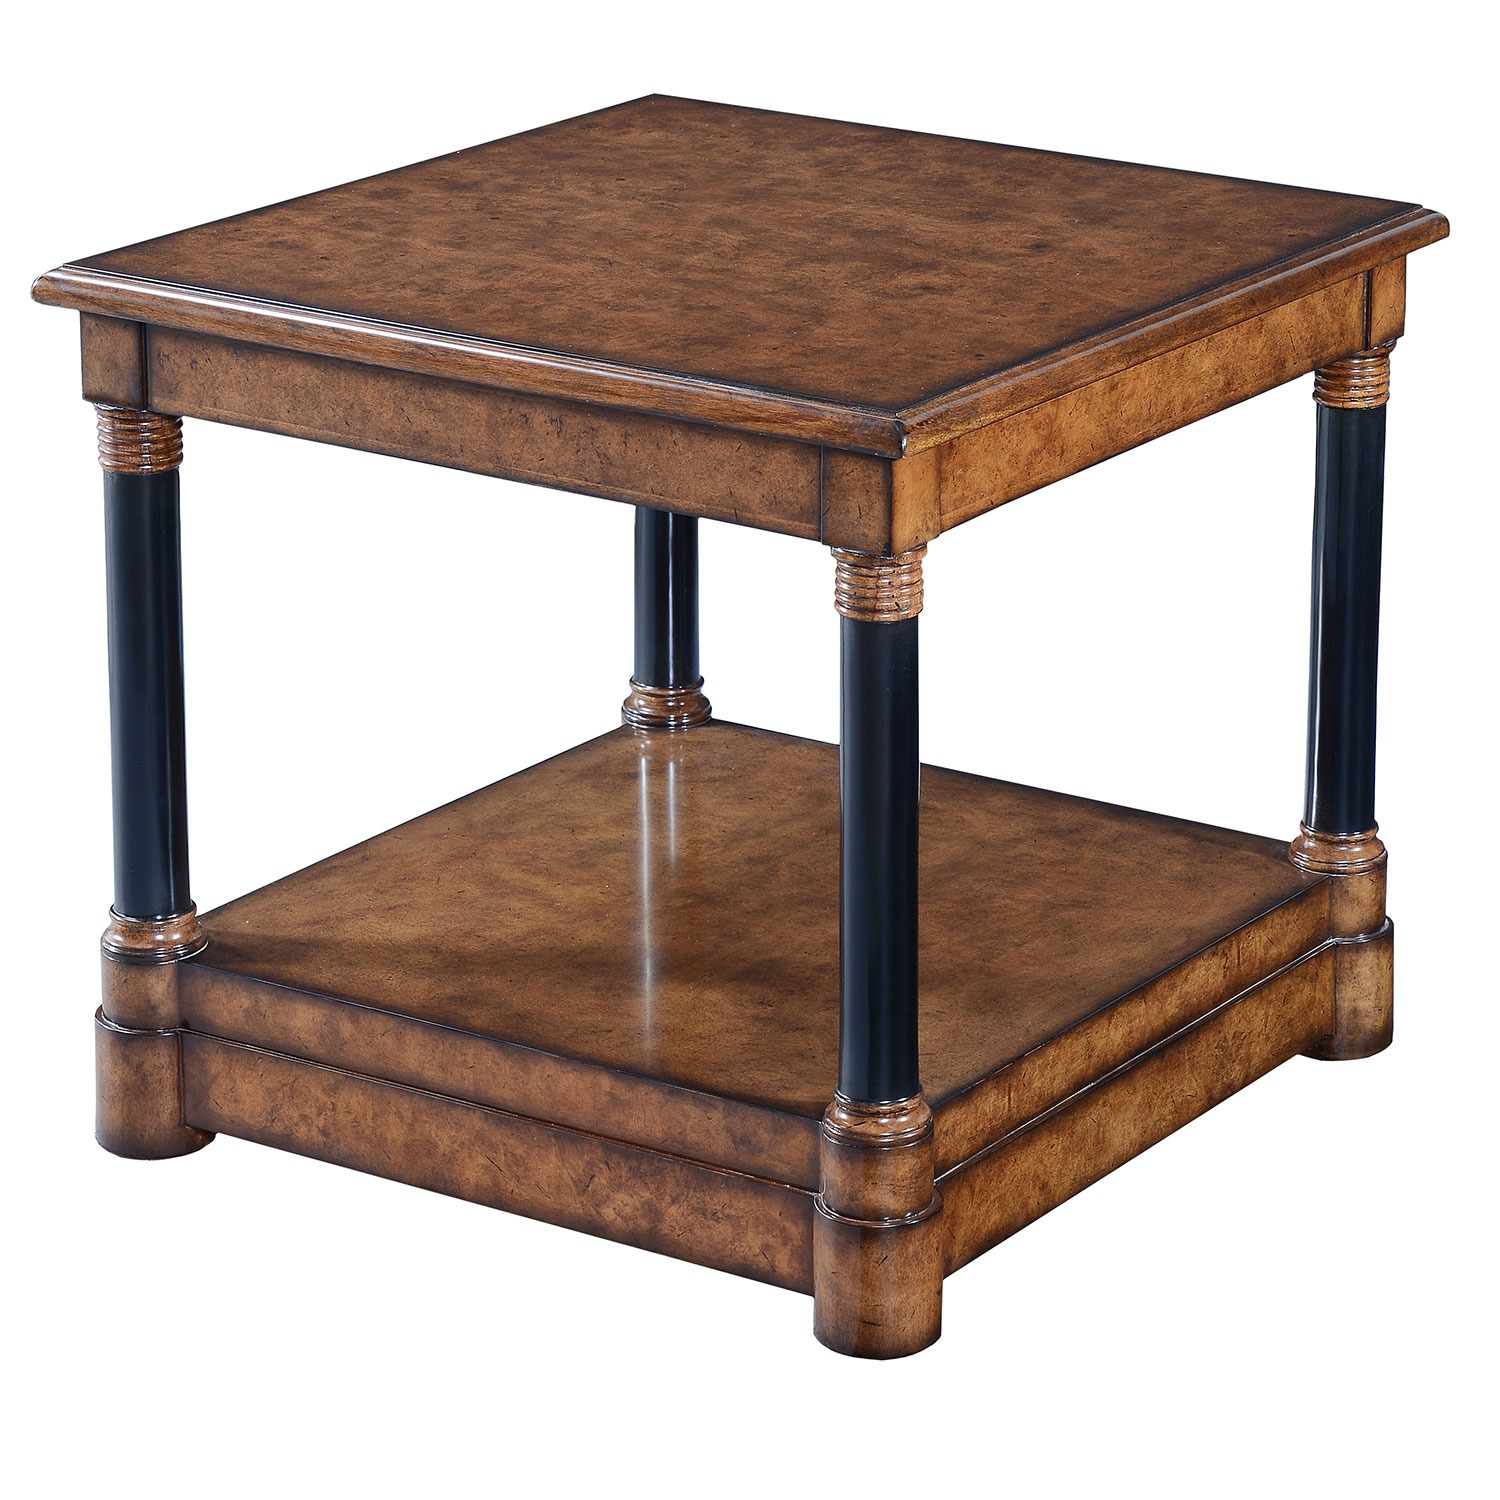 Empire style side table - Burr oak with ebonised legs